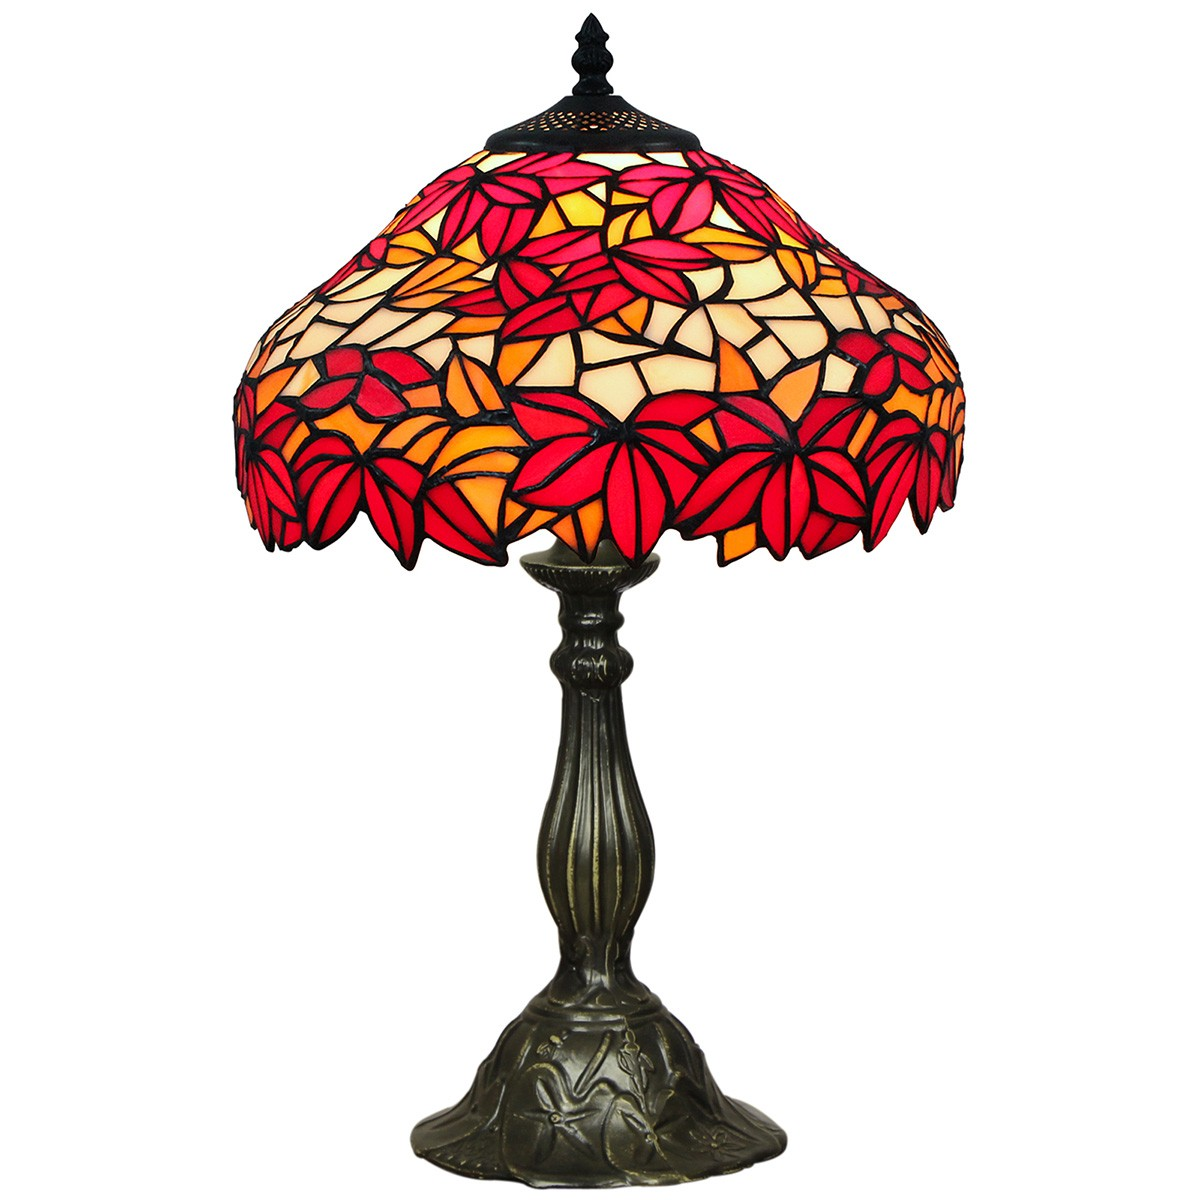 Maiden Tiffany Stained Glass Table Lamp, Small